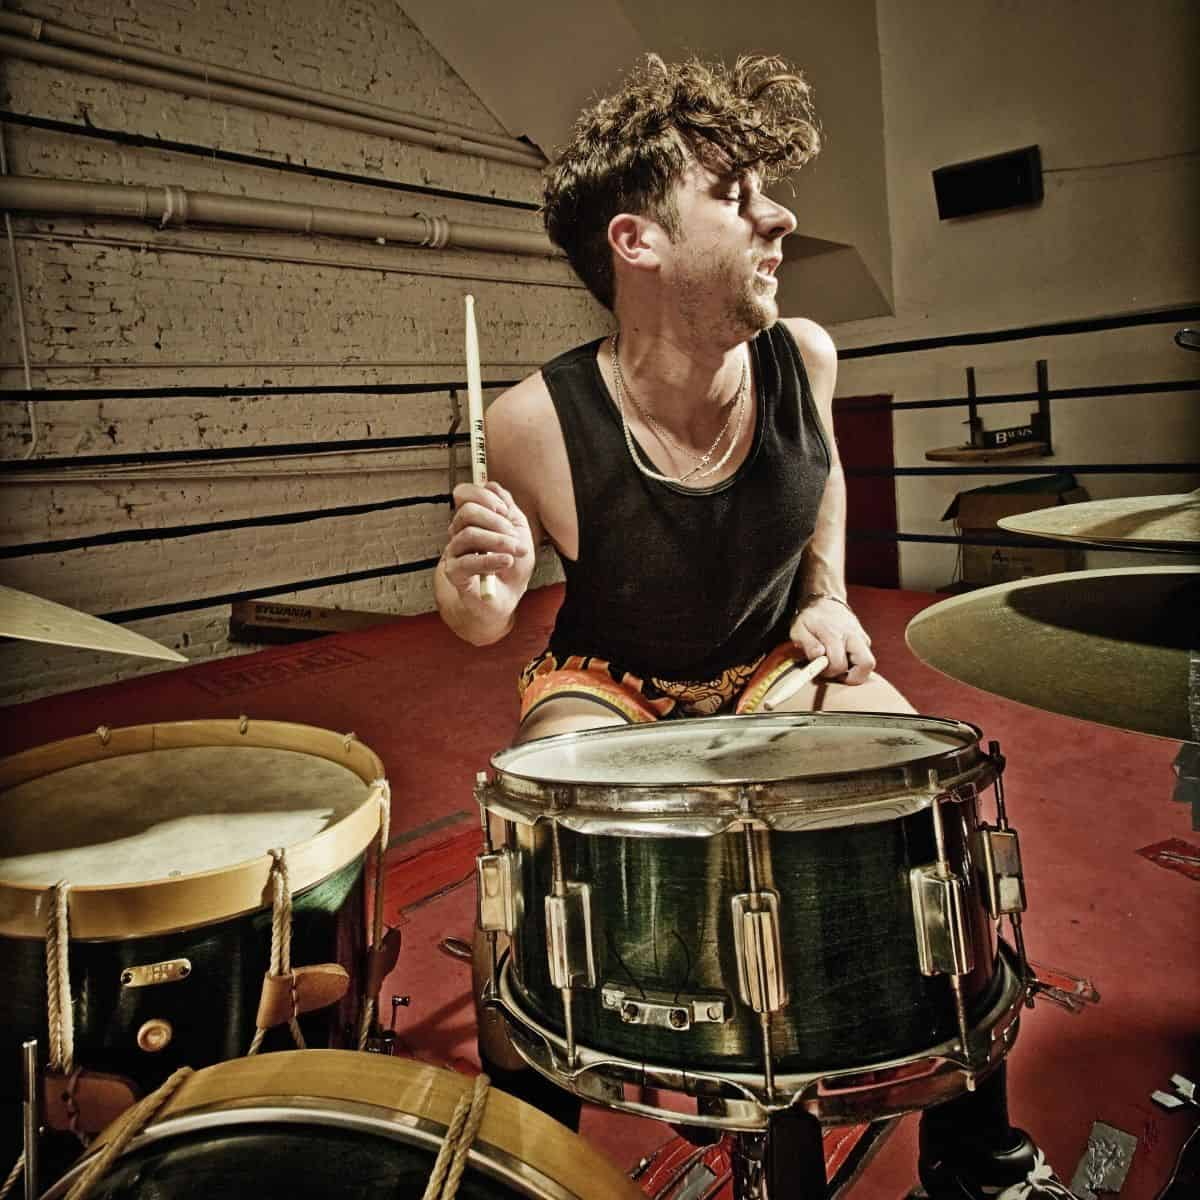 Sean Noonan Drumming. Photo: Dirk Eusterbrock